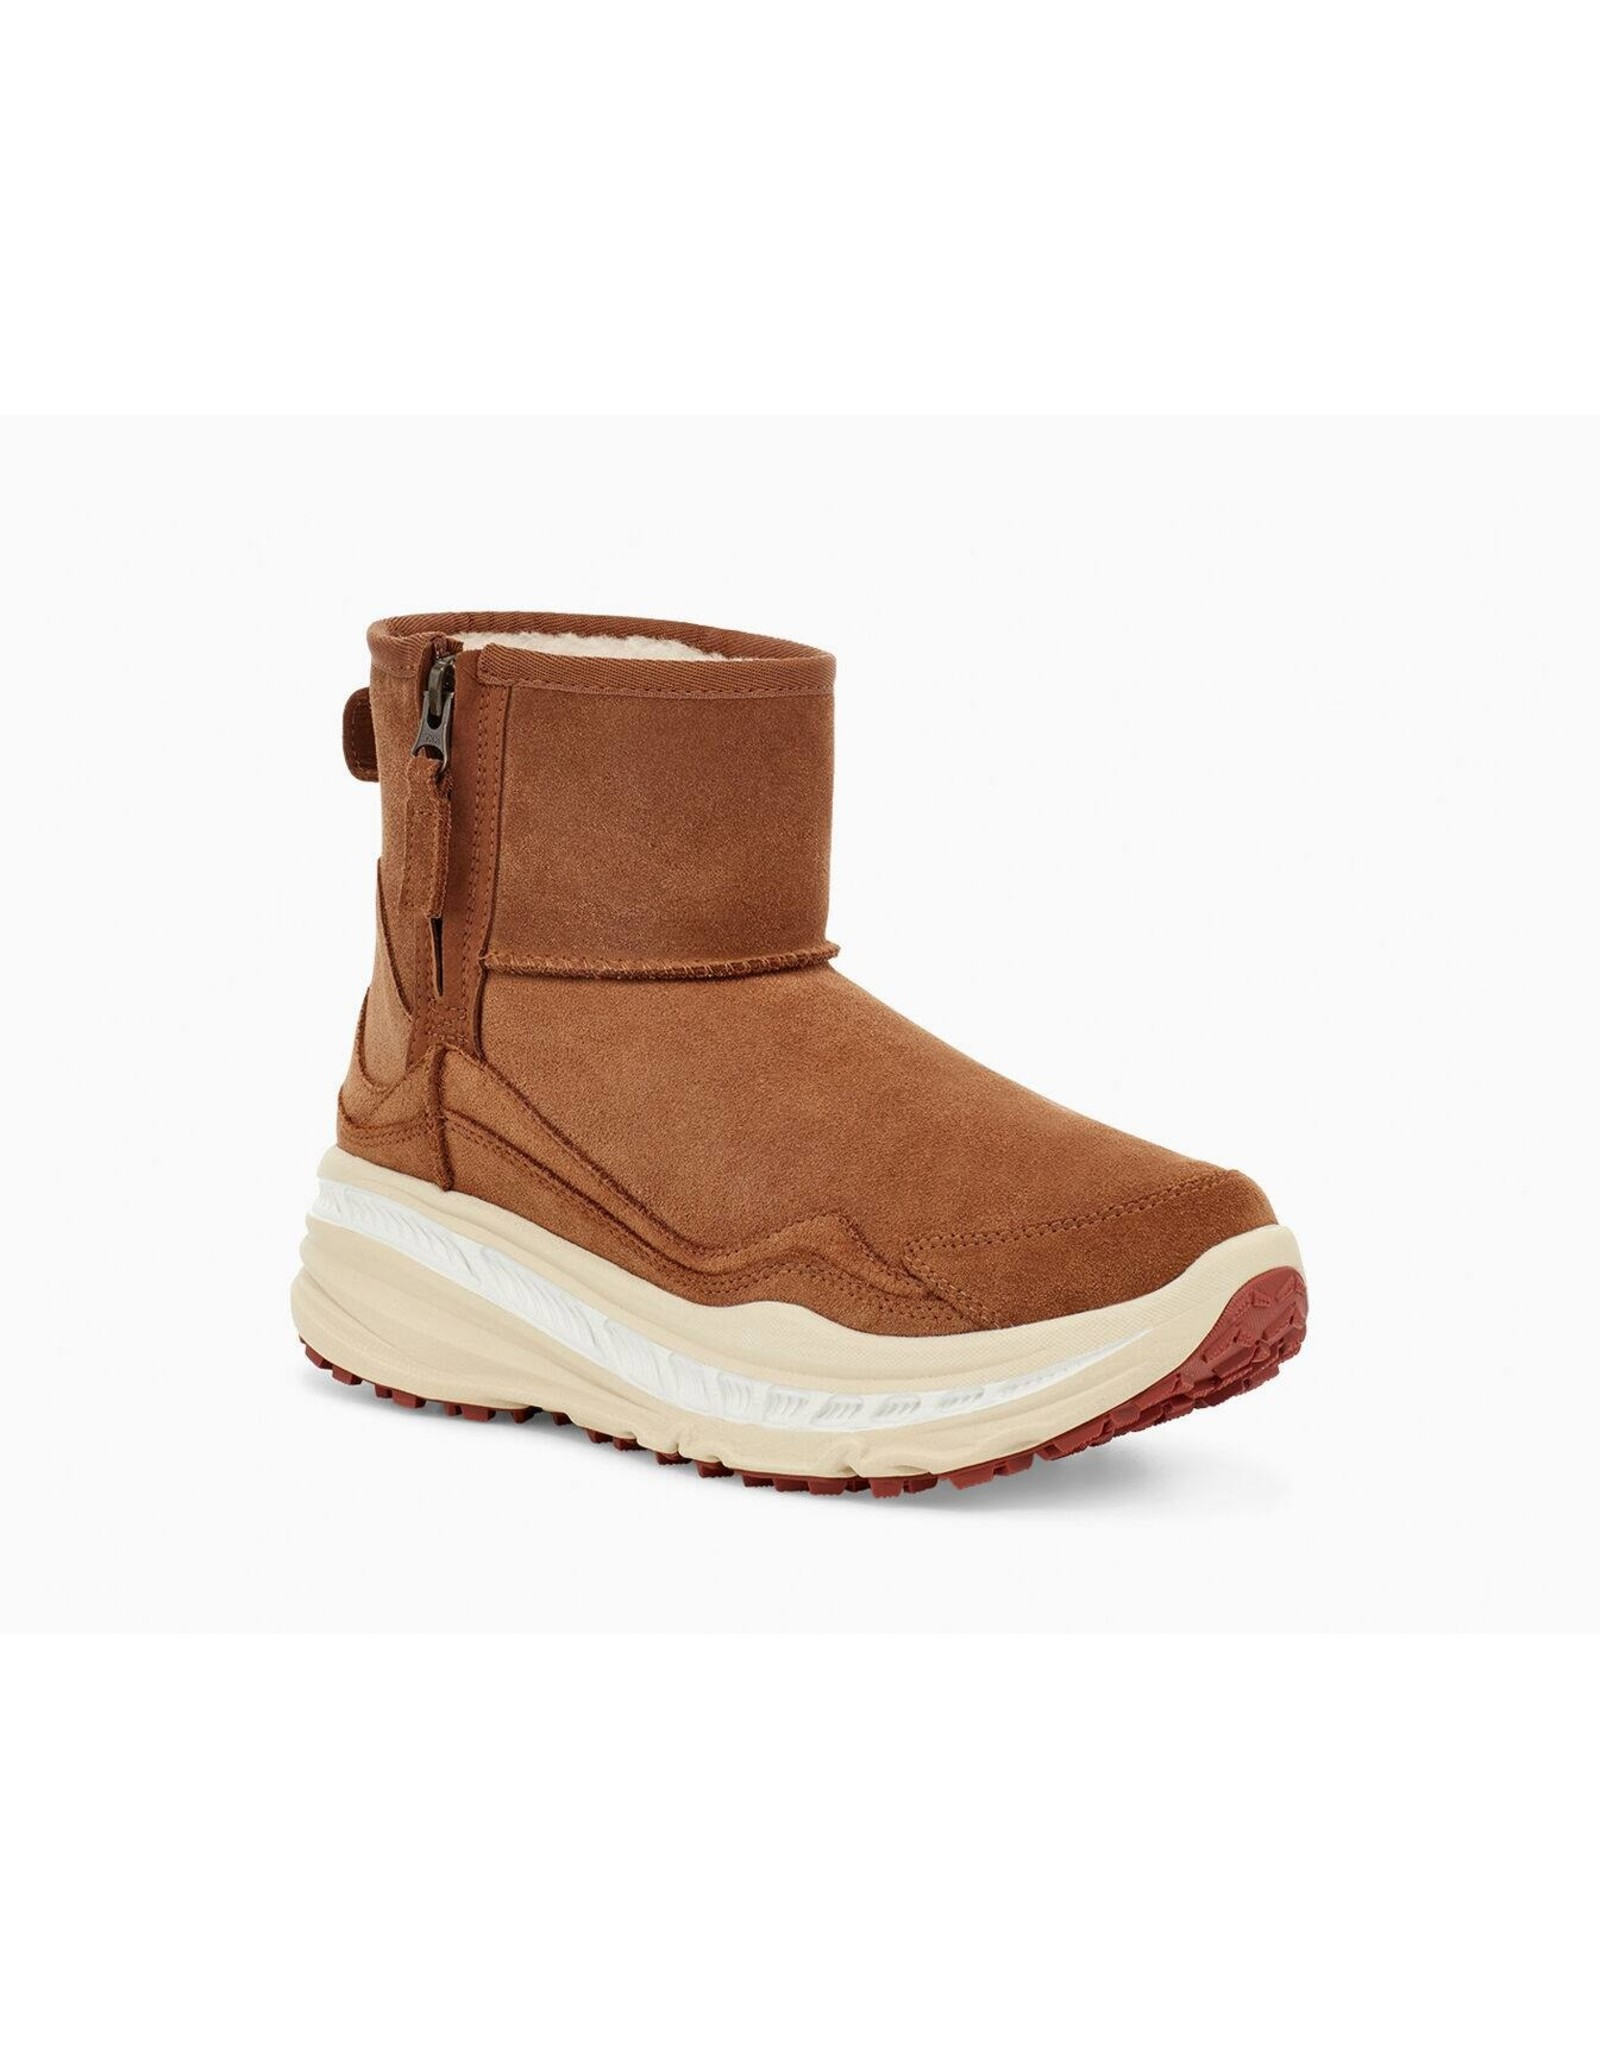 UGG MEN'S CA805 CLASSIC WEATHER-CHESTNUT